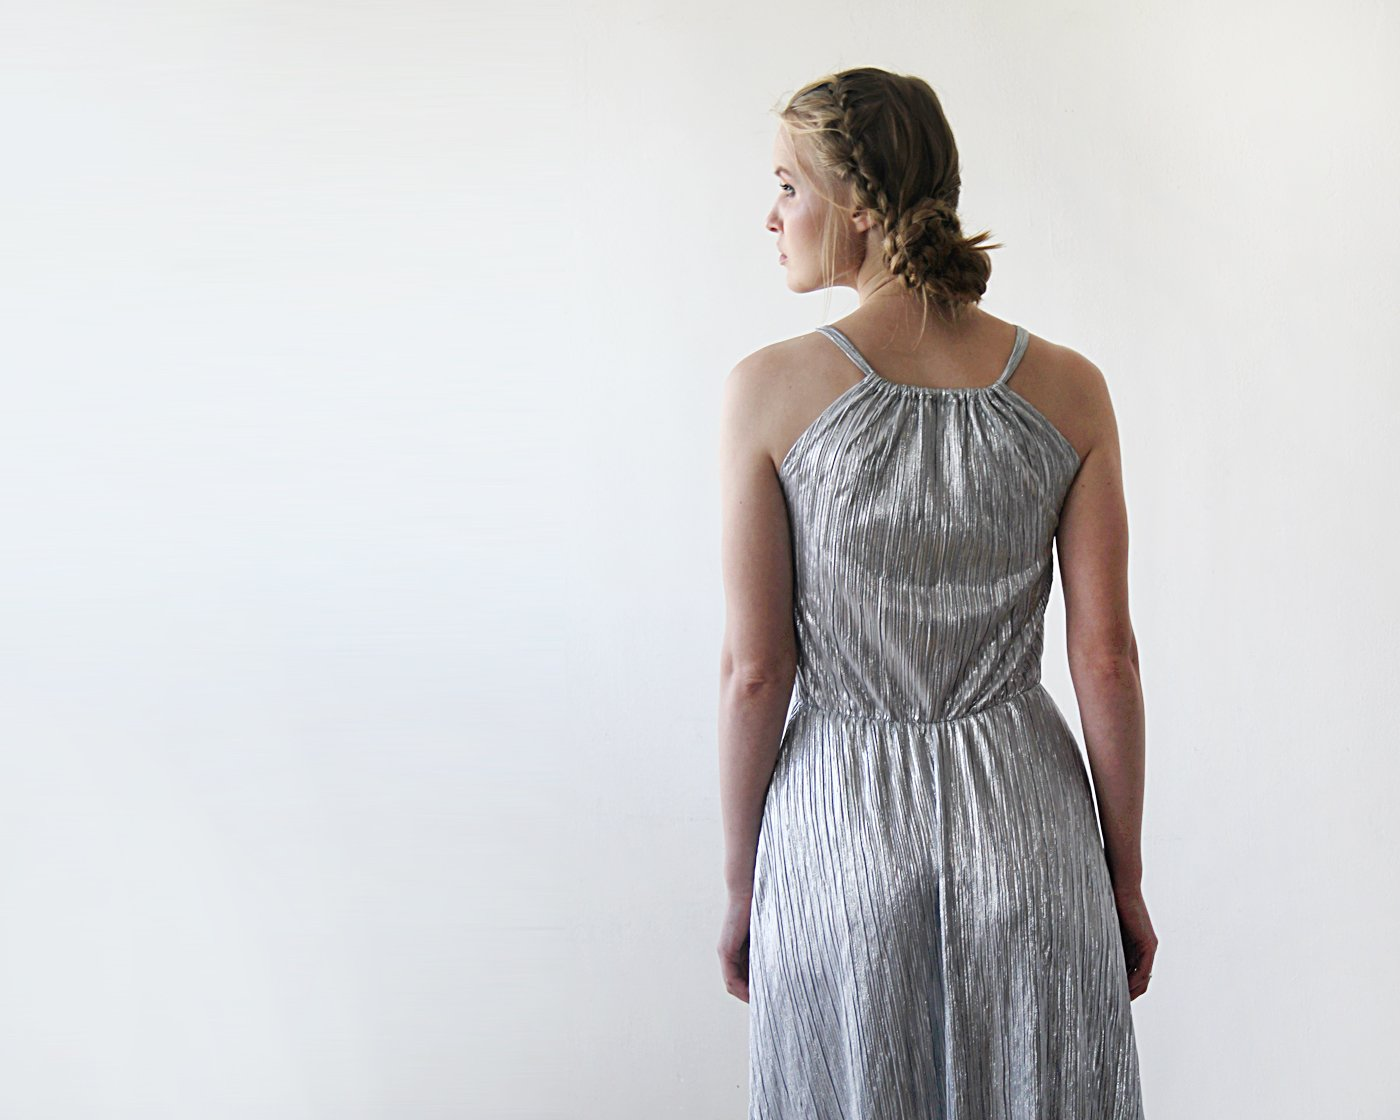 Pleated Halter Neck Sleeveless Maxi Dress, Metallic Silver Dress,Maxi Dress With A Slit 1200 - Blushfashion